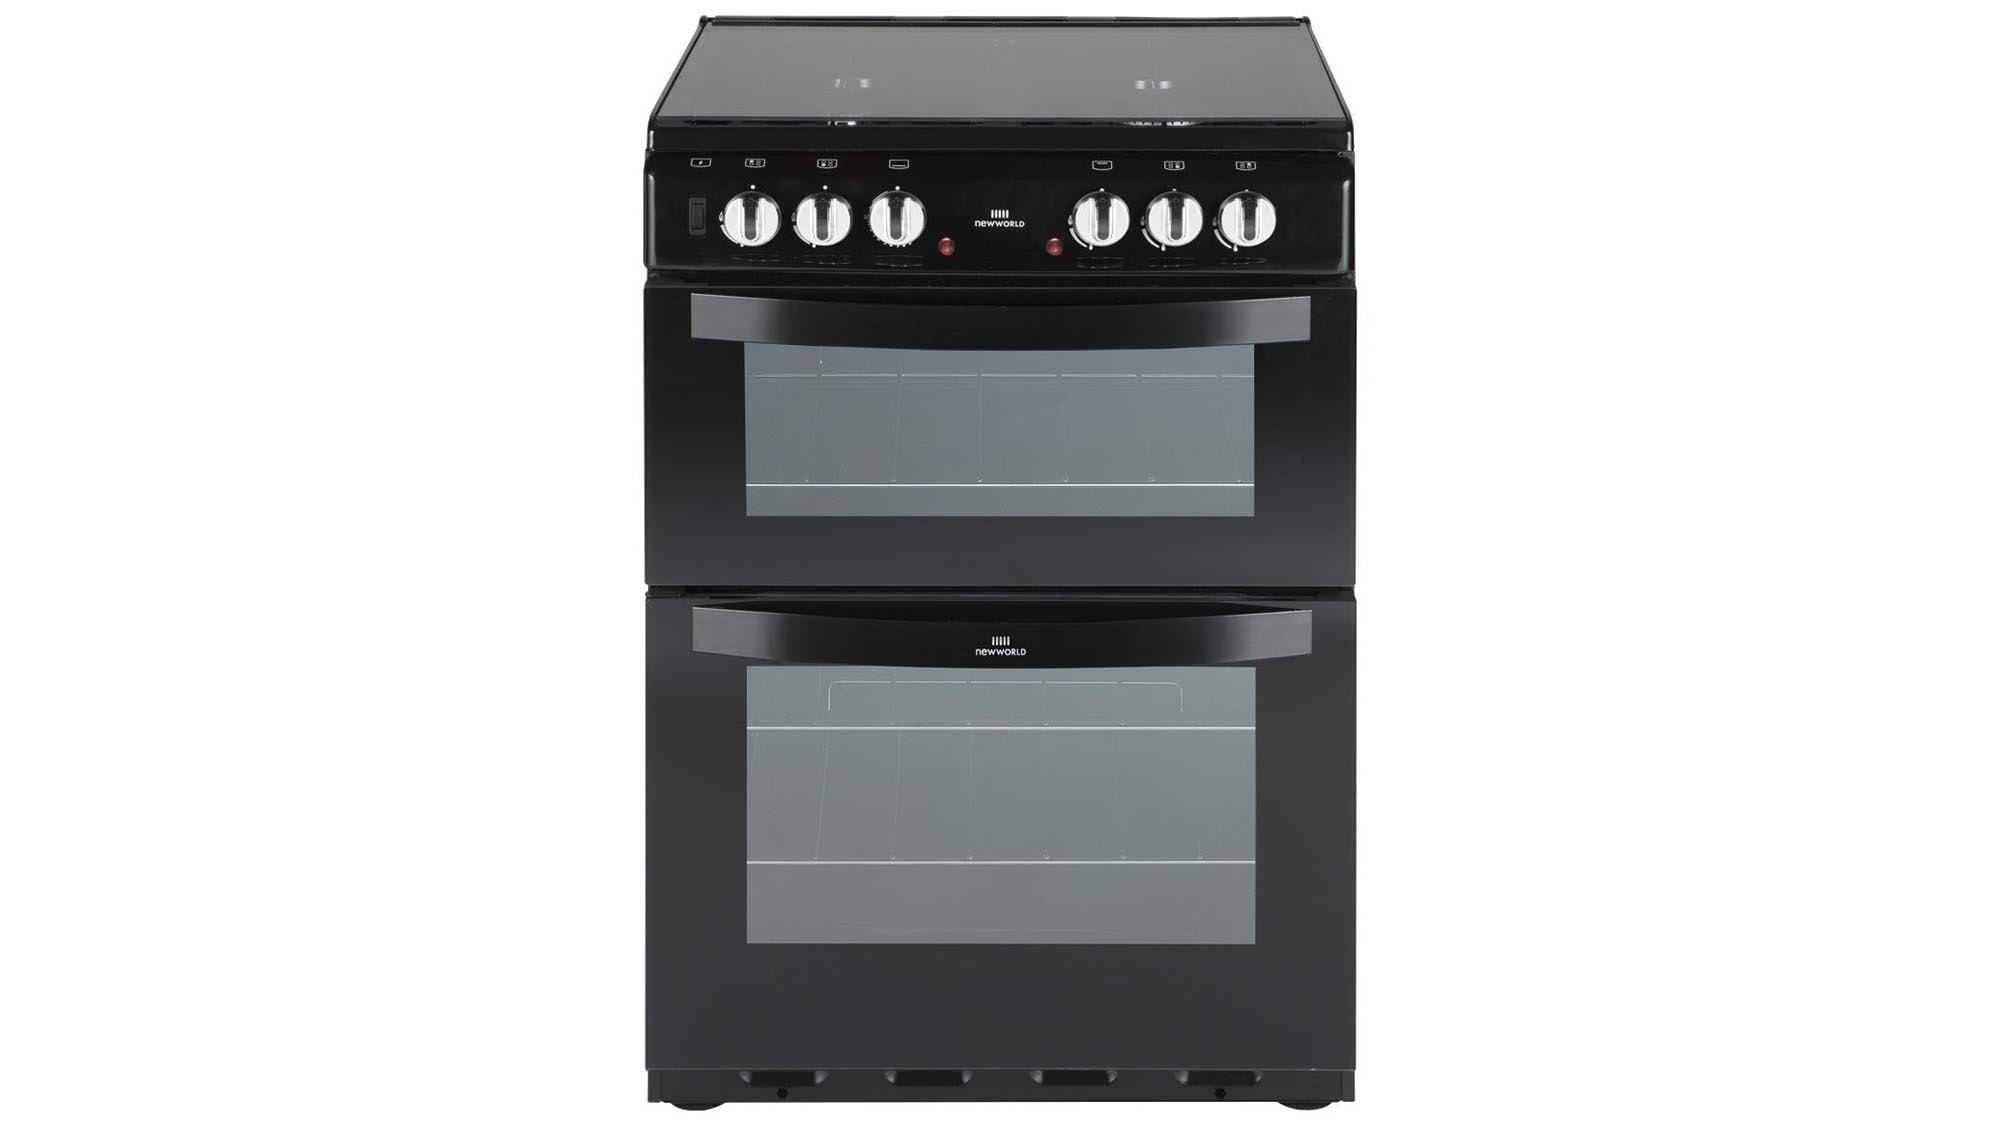 granted newworld isn u0027t a brand one would normally gravitate towards but this dual fuel option has gleaned some very favourable reviews from both     best oven  the best ovens hobs and cookers from   380   expert reviews  rh   expertreviews co uk